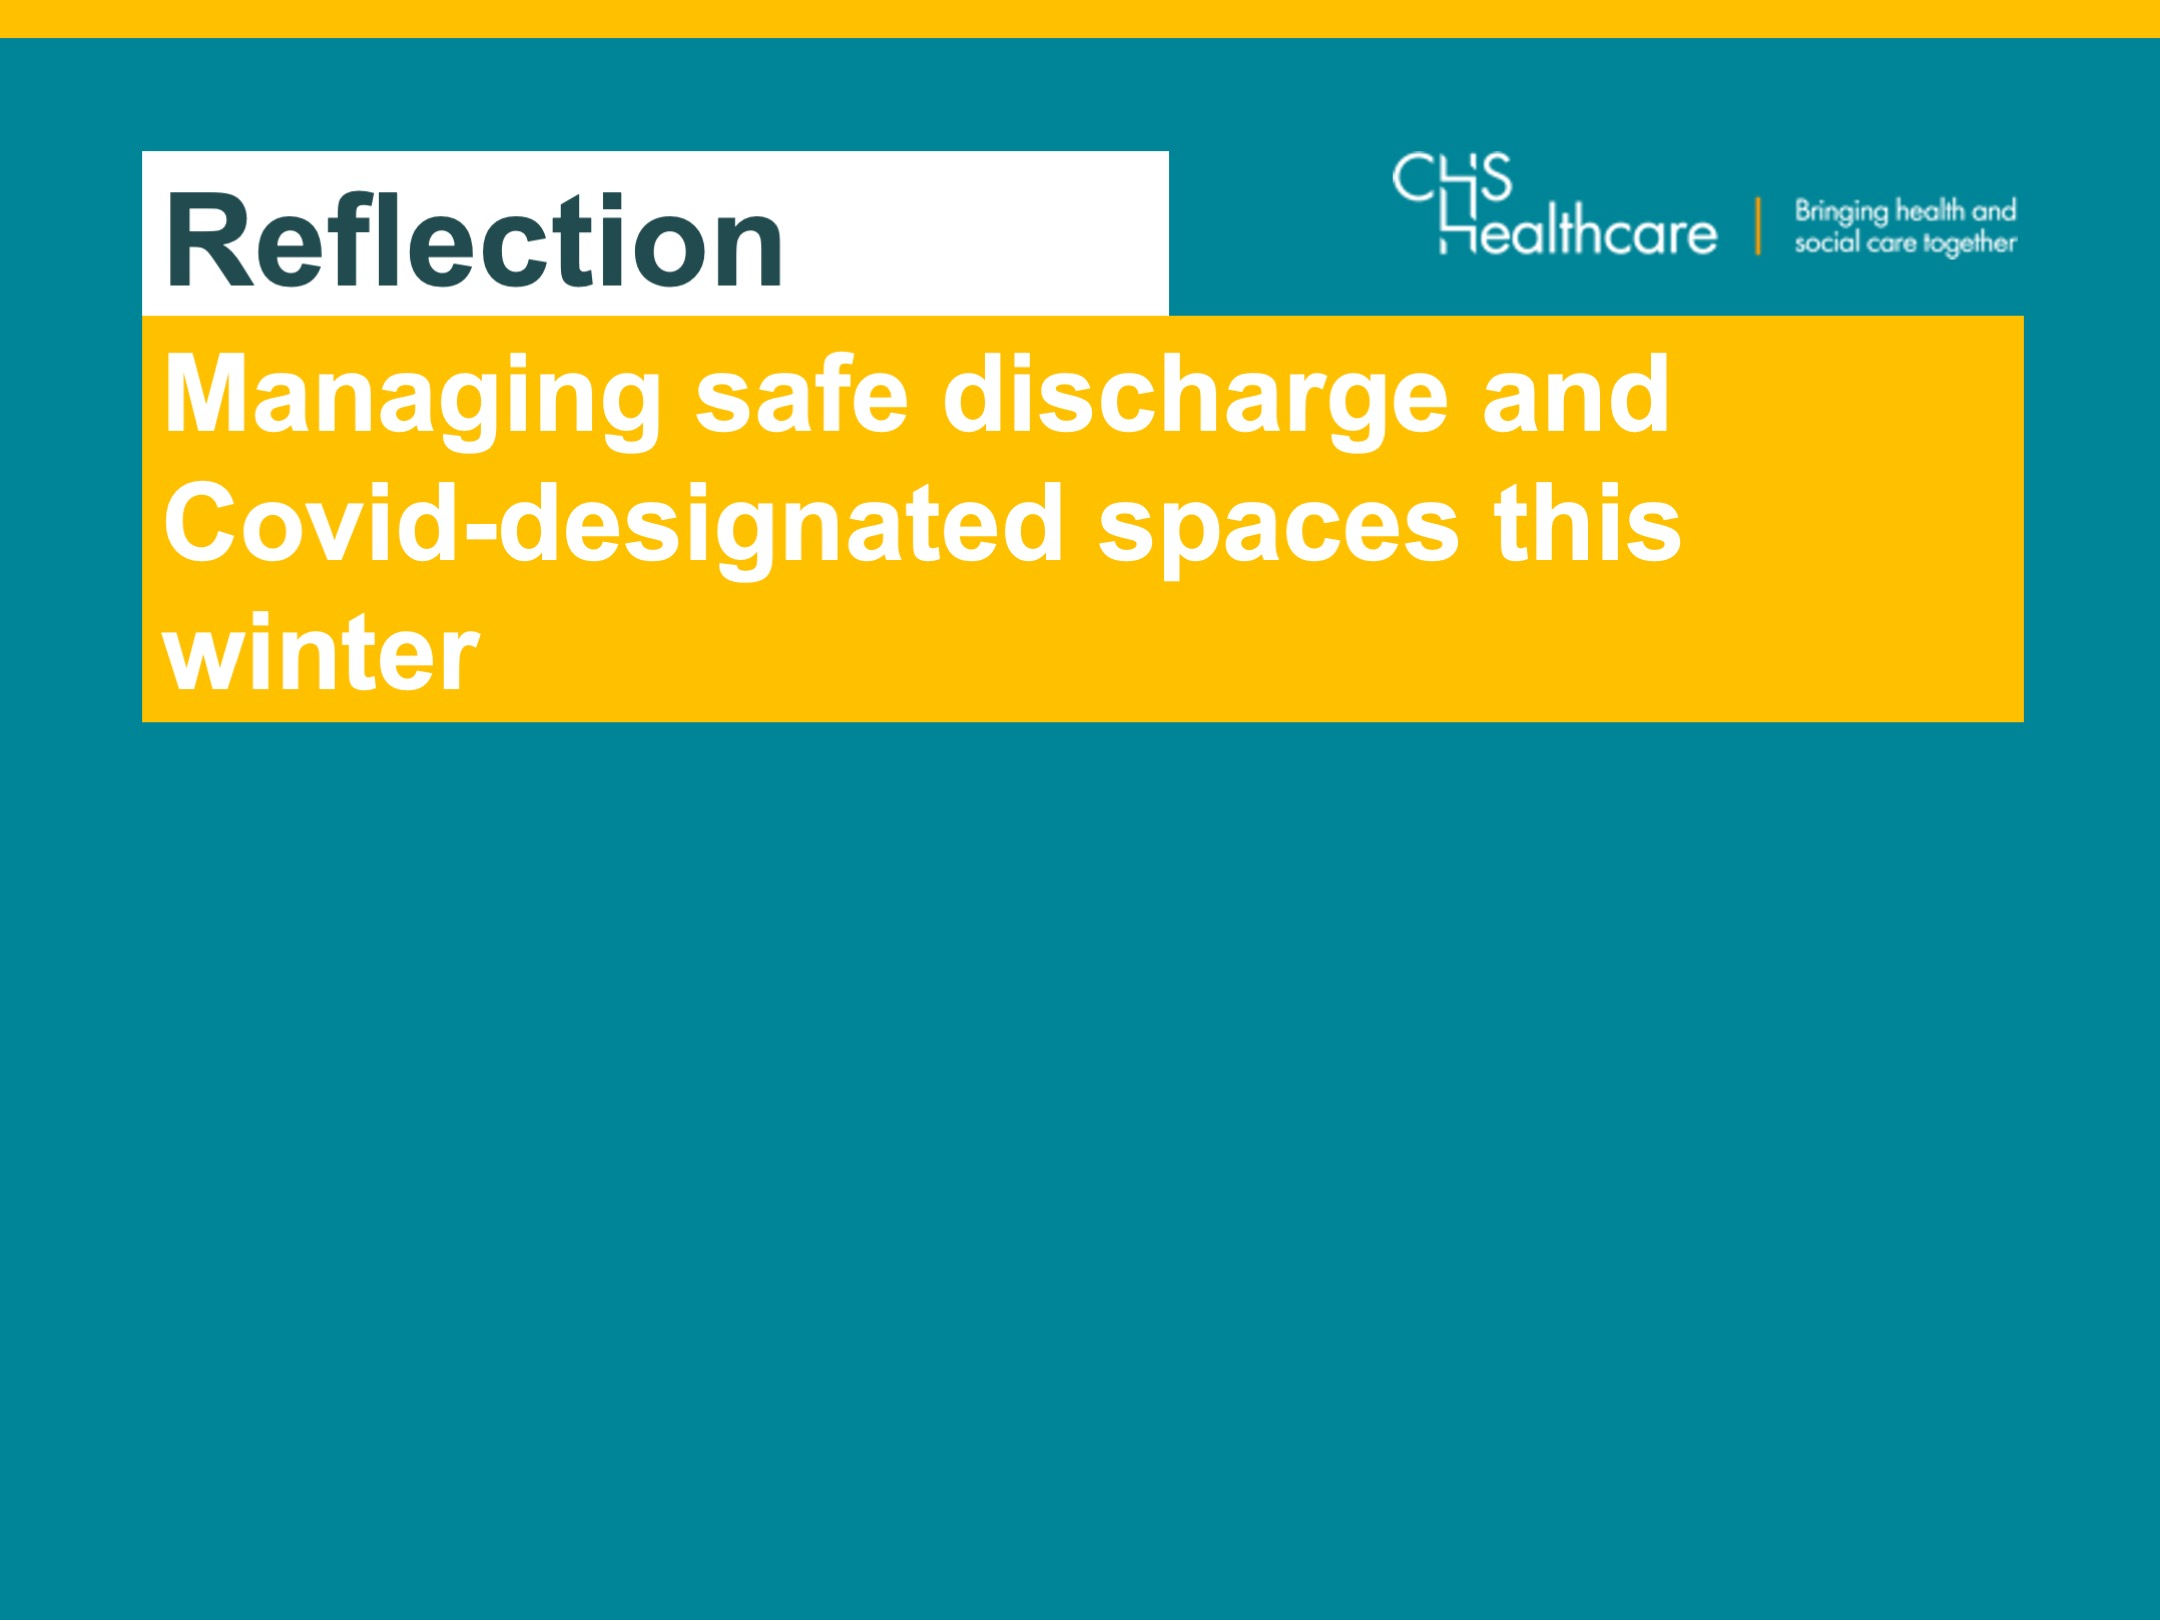 Managing safe discharge and Covid-designated spaces this winter